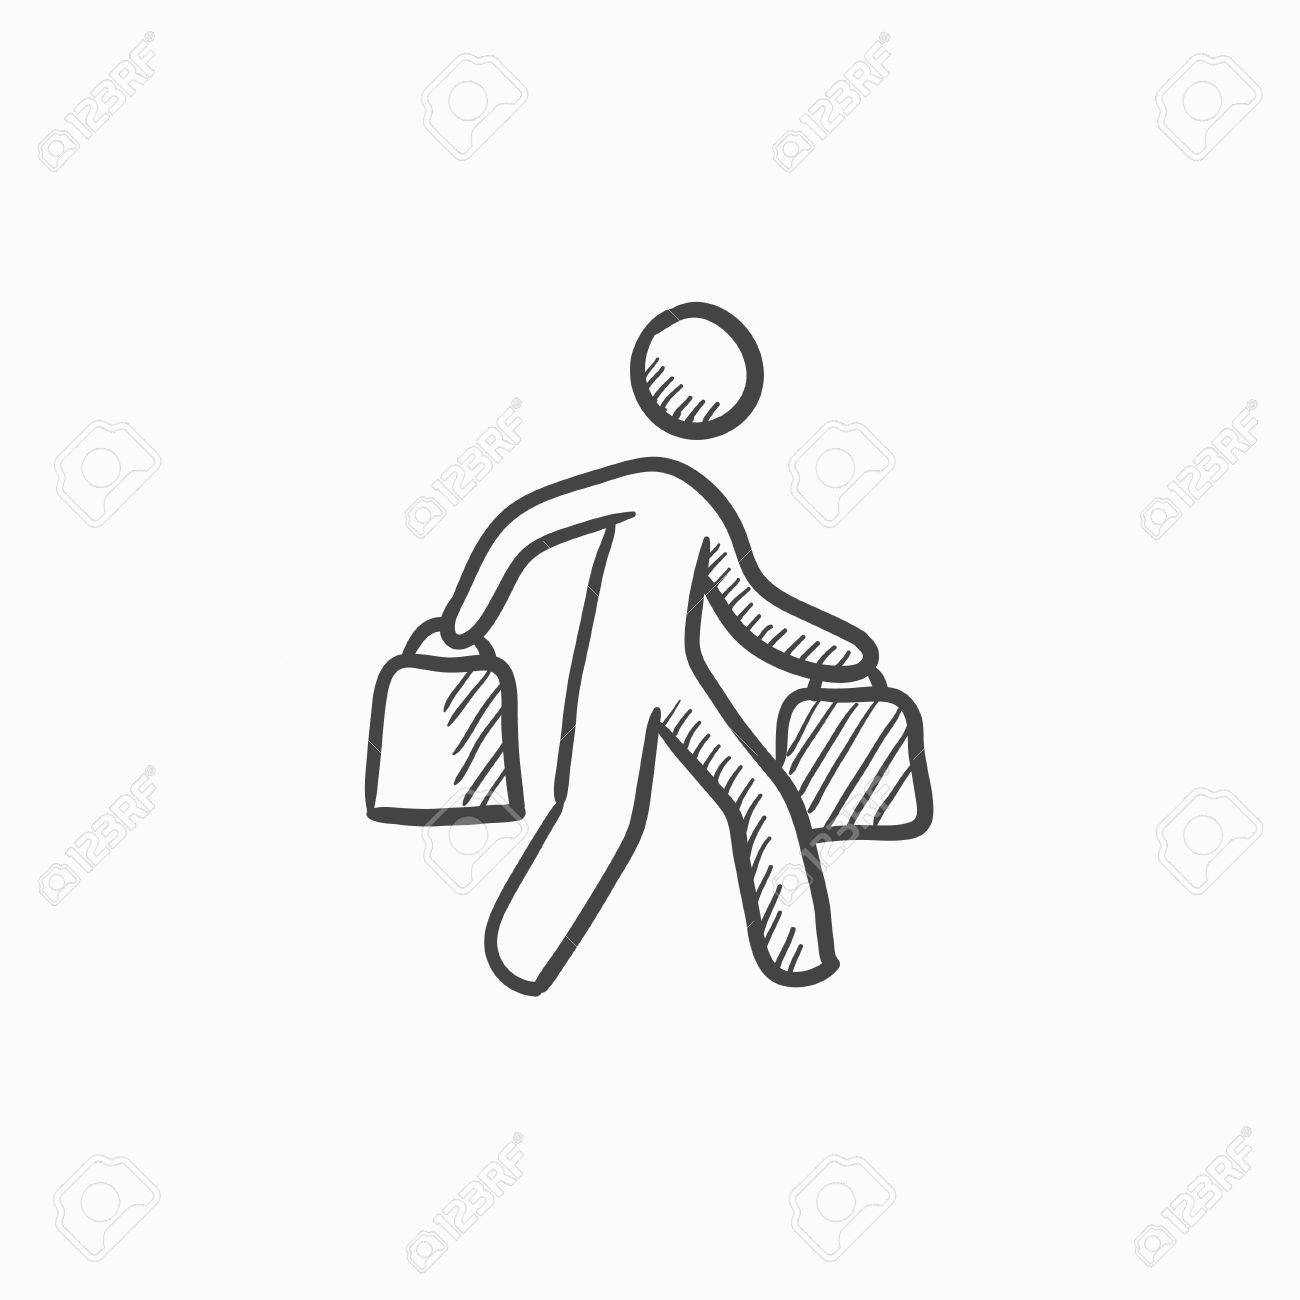 Man Carrying Shopping Bags Vector Sketch Icon Isolated On Background Royalty Free Cliparts Vectors And Stock Illustration Image 61248475